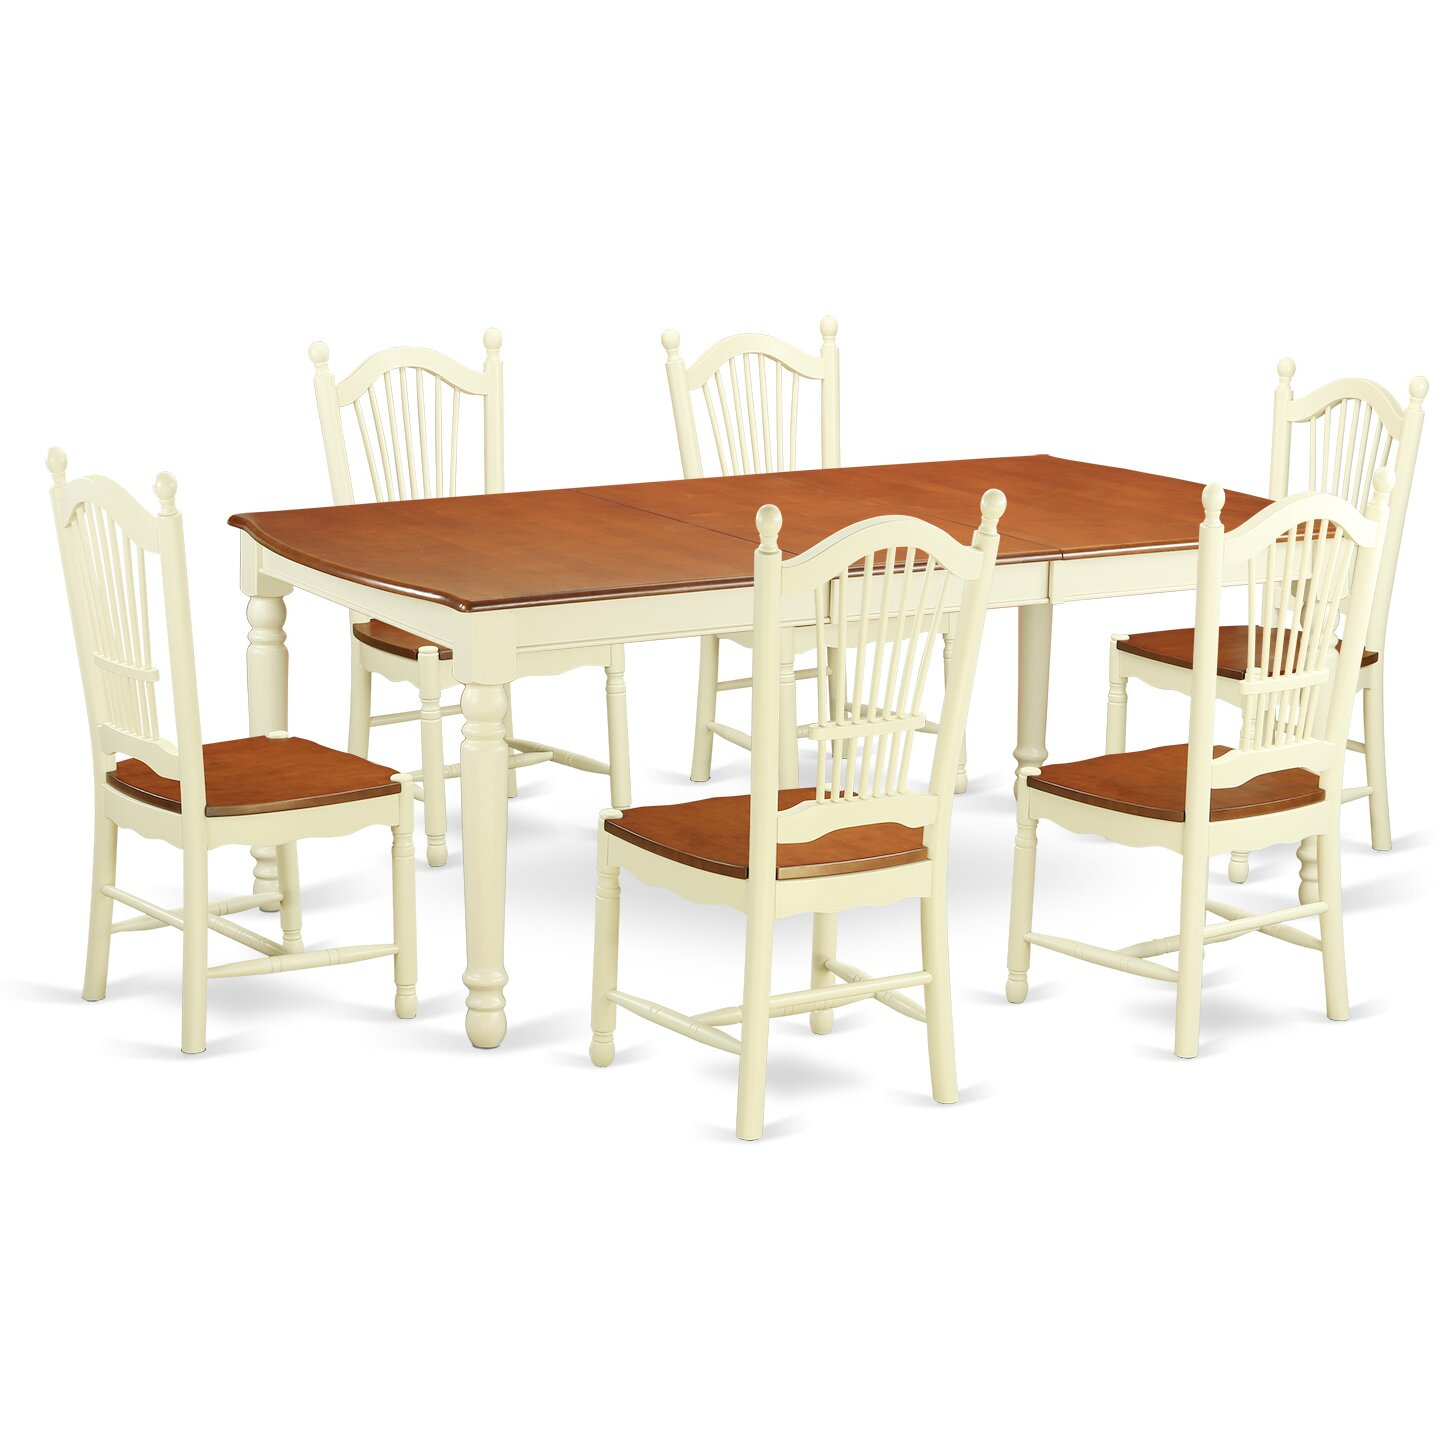 East west dover 7 piece dining set reviews wayfair for Kitchen table set 6 chairs